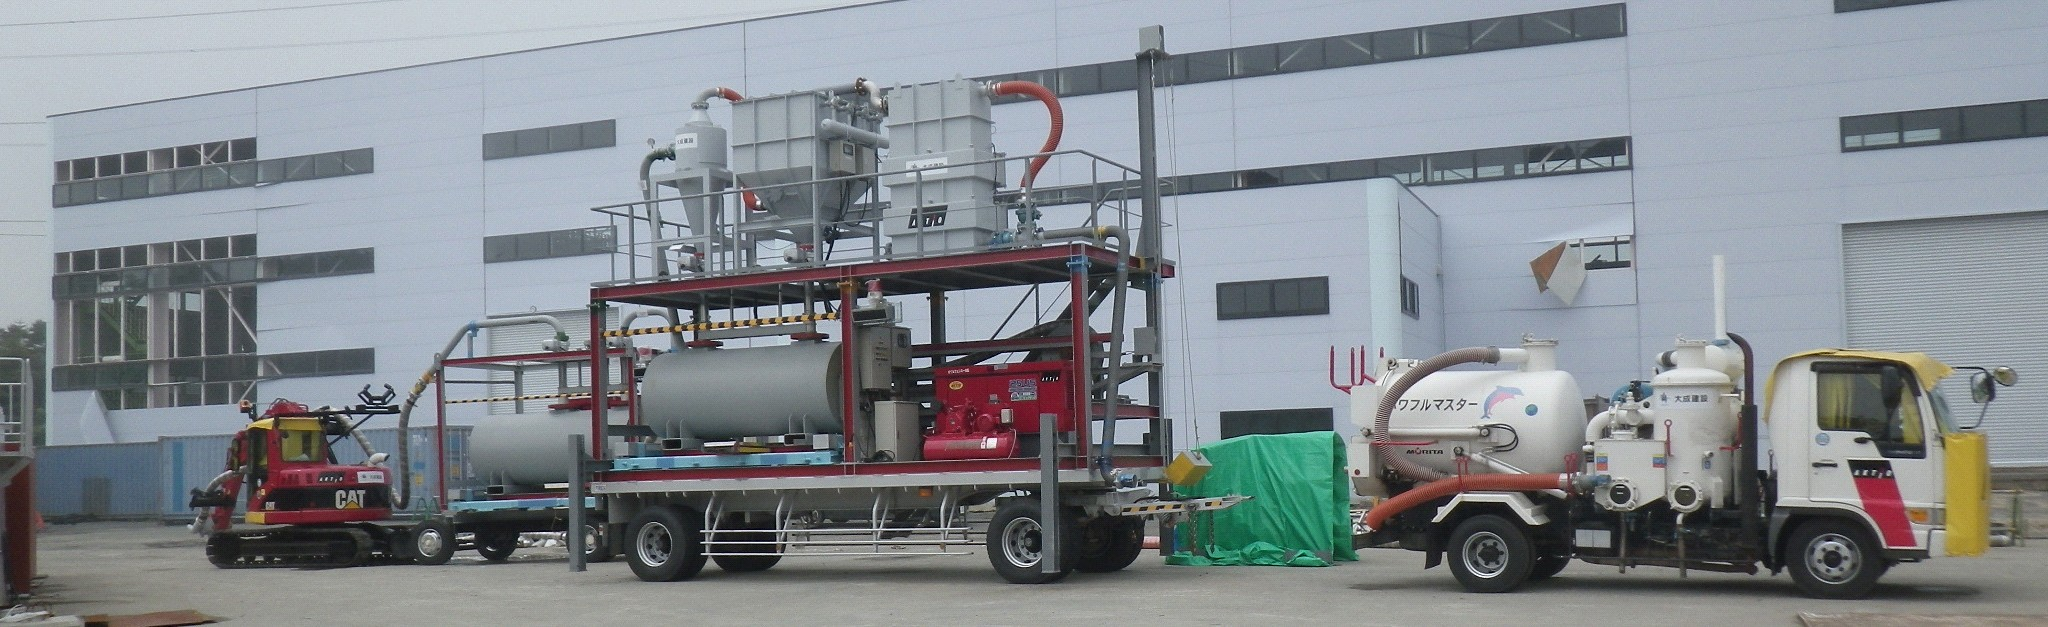 Overview of Dust Collector System